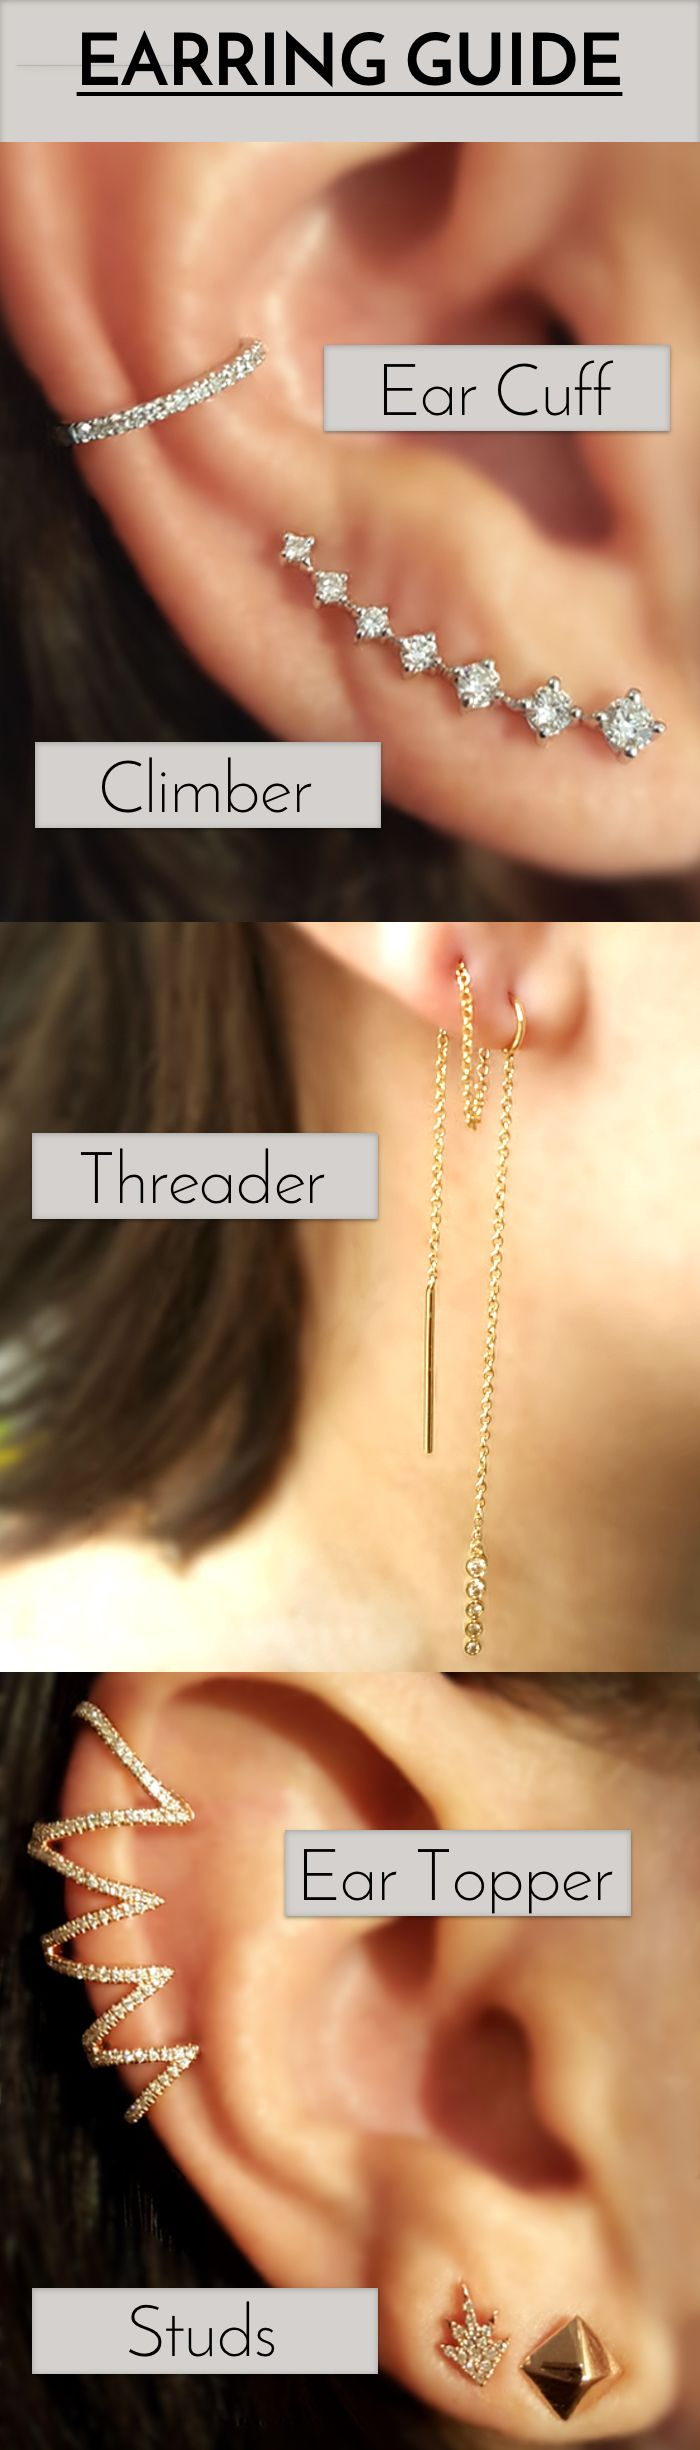 I really like the ear threaders. They are really cool.